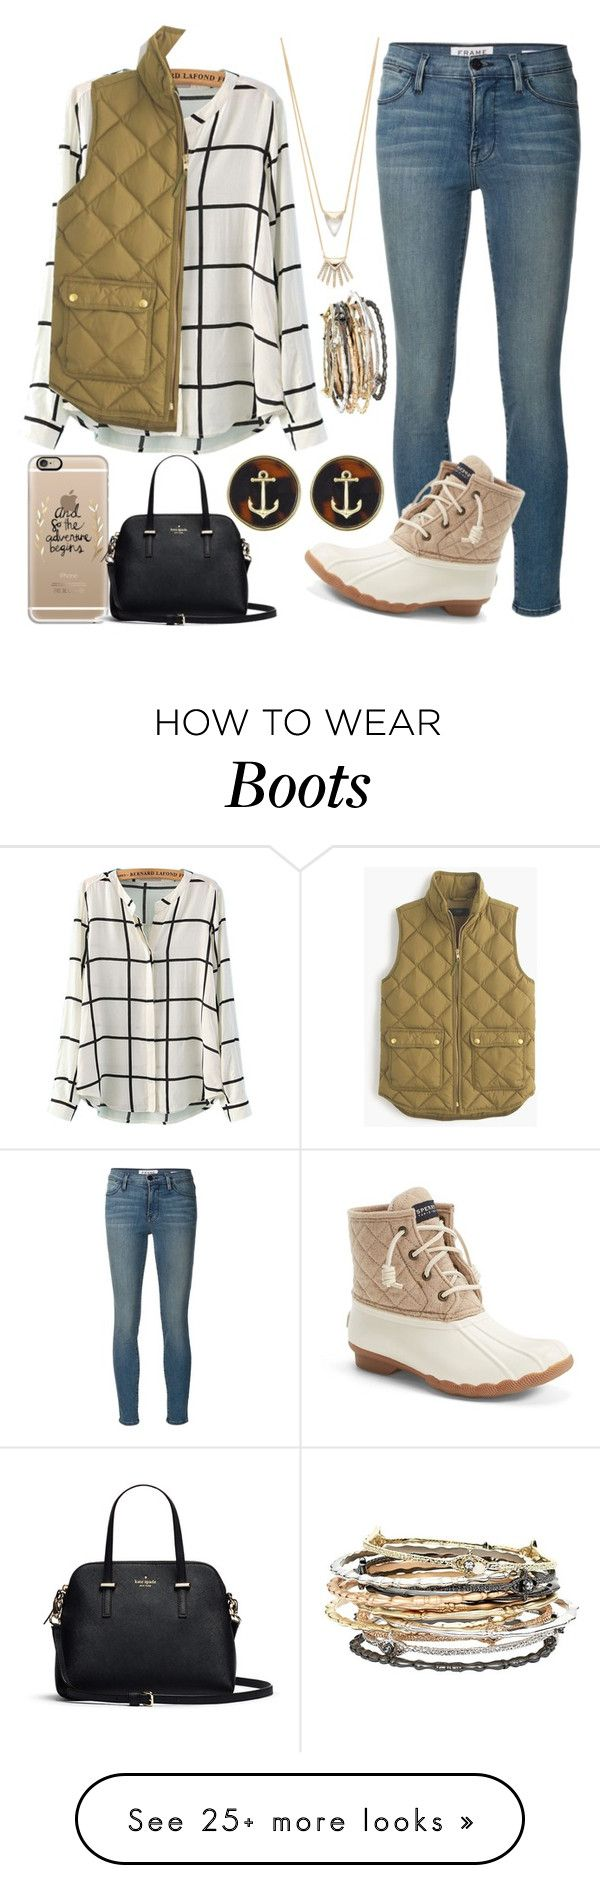 """{duck boots gone classy} contest entry!"" by lilianndevos on Polyvore featuring Kendra Scott, Frame Denim, Sperry Top-Sider, WithChic, Alexis Bittar, J.Crew, Fornash, Casetify, women's clothing and women's fashion"